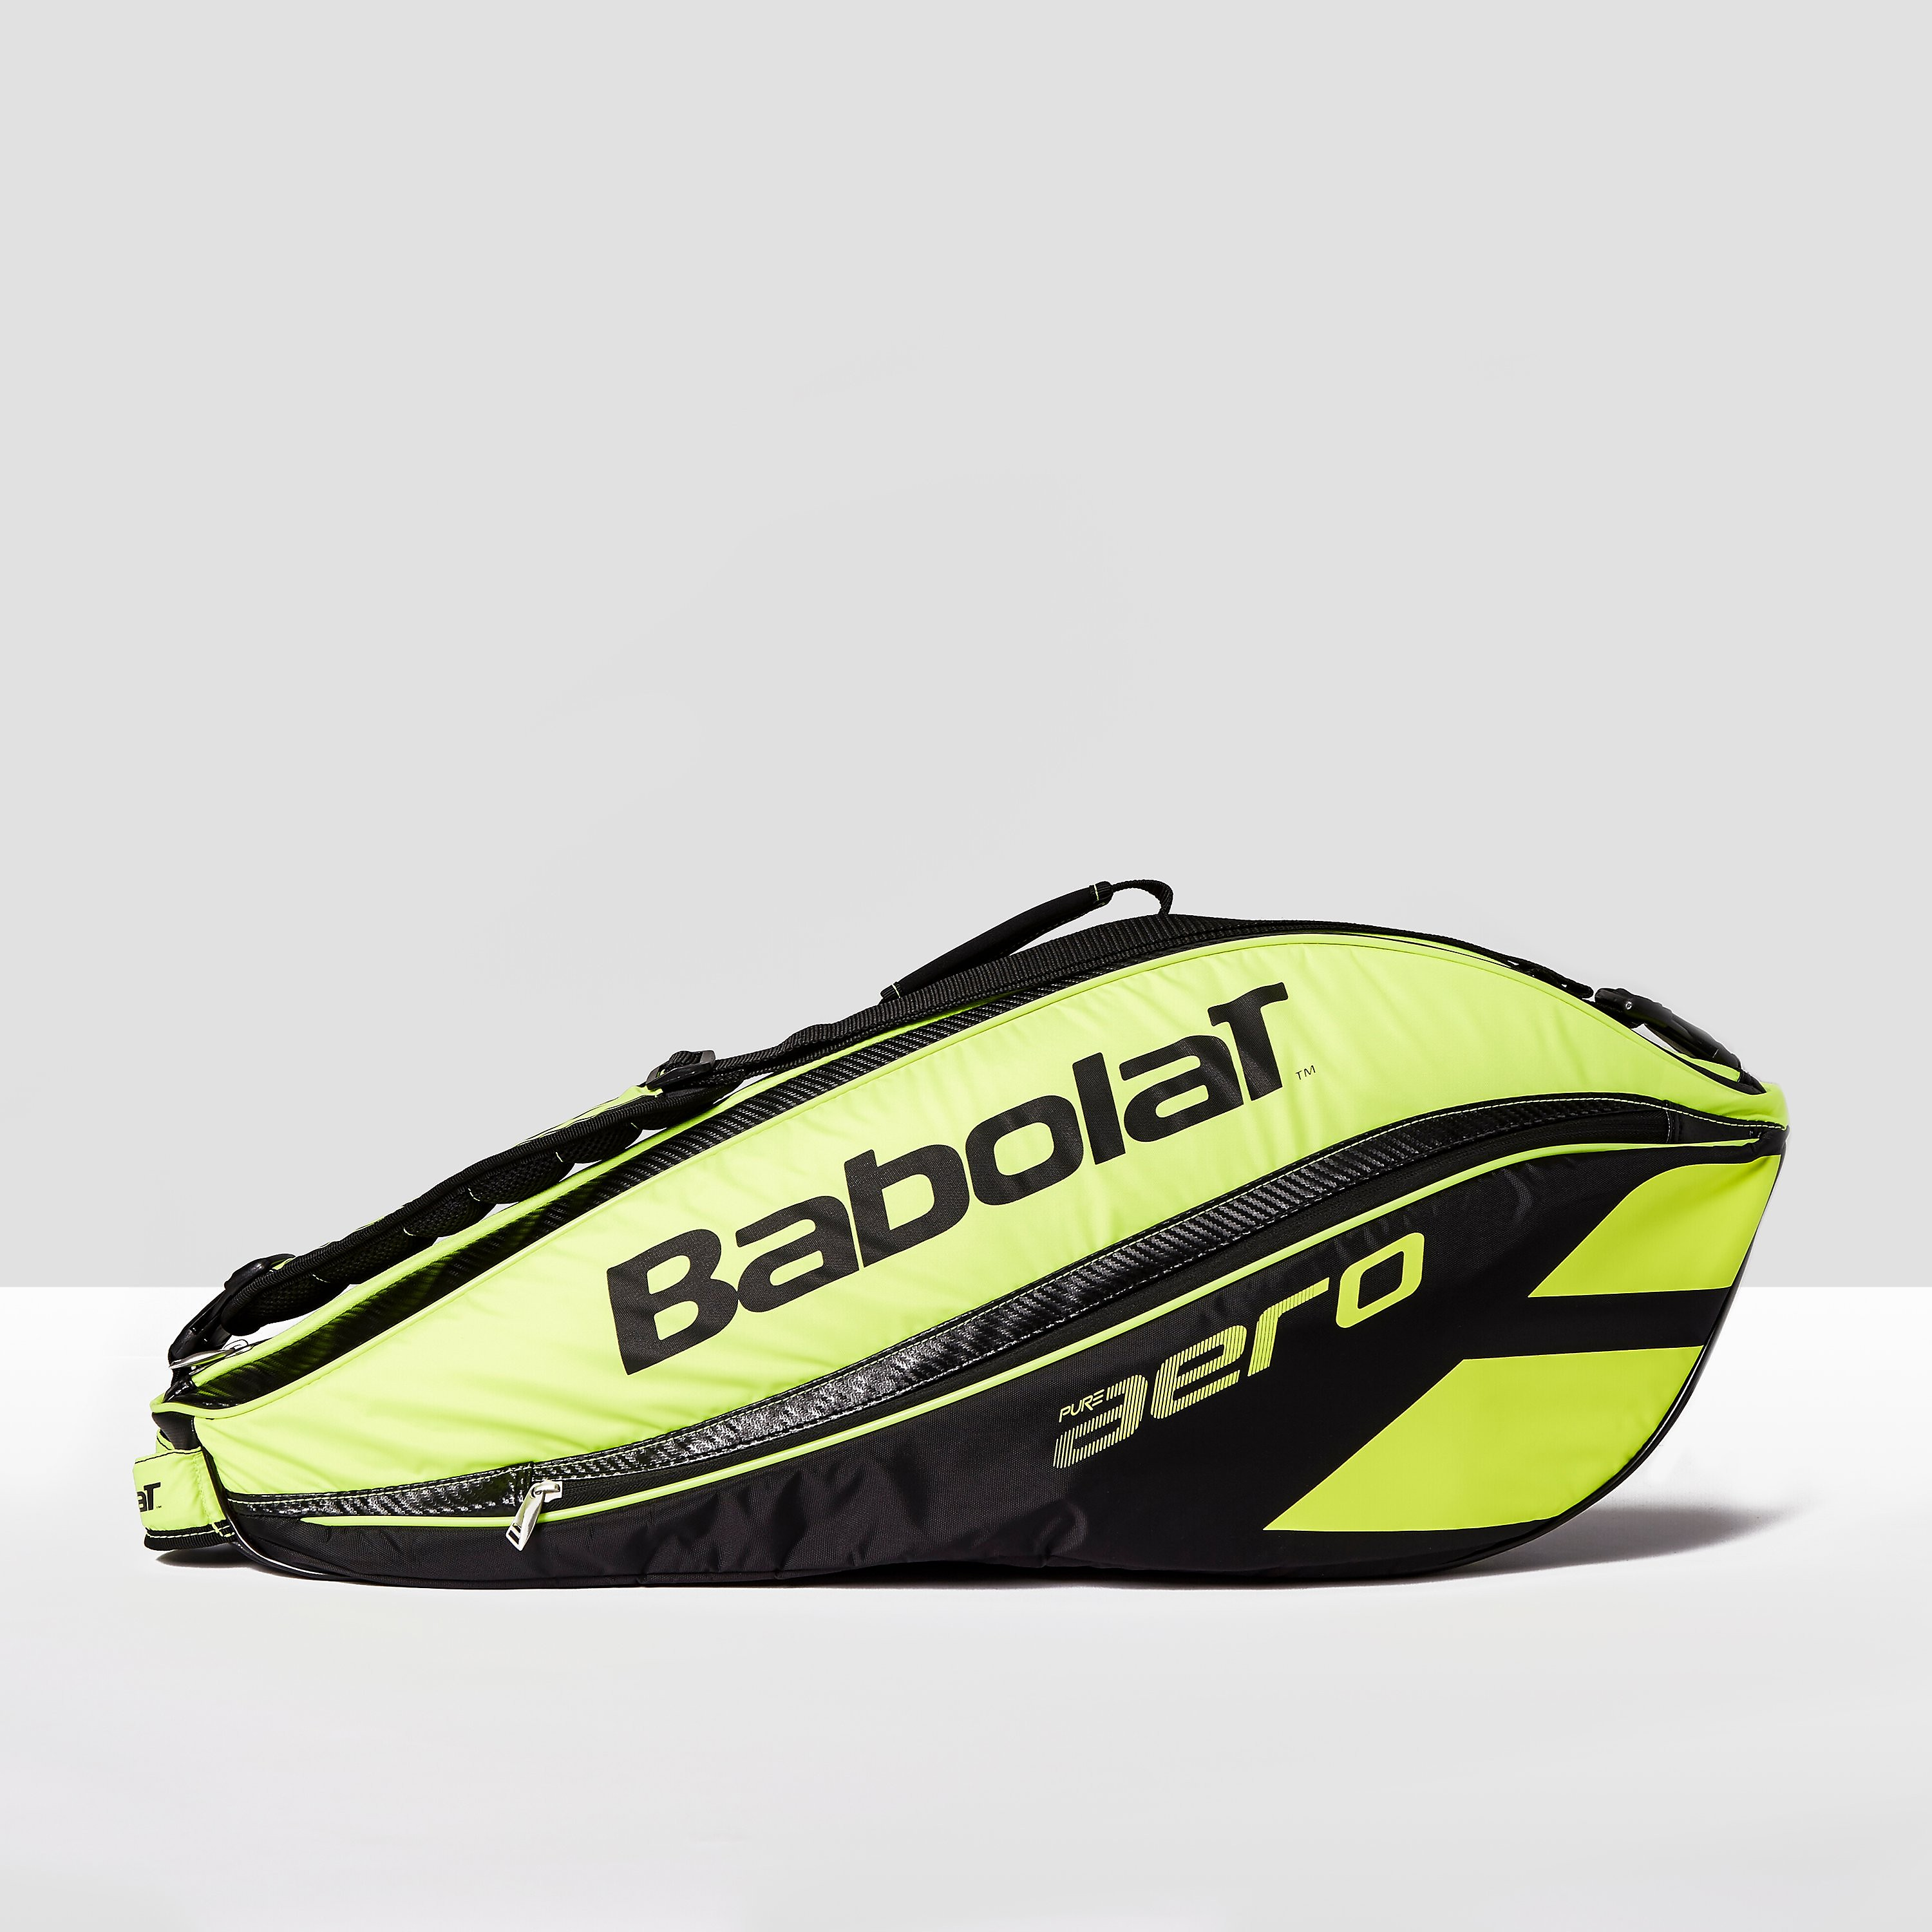 BABOLAT Racket Holder x3 Aero